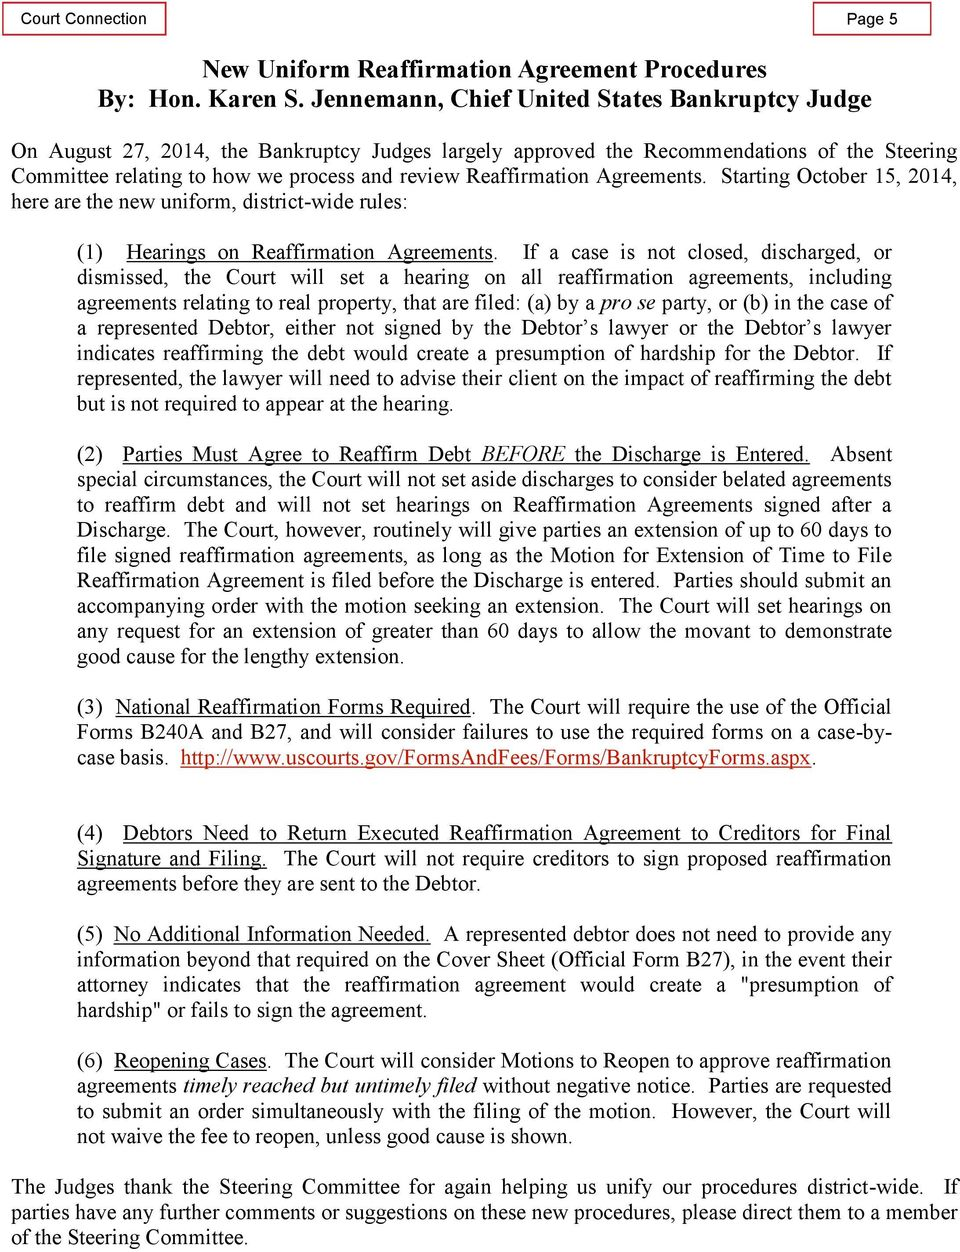 Reaffirmation Agreements. Starting October 15, 2014, here are the new uniform, district-wide rules: (1) Hearings on Reaffirmation Agreements.